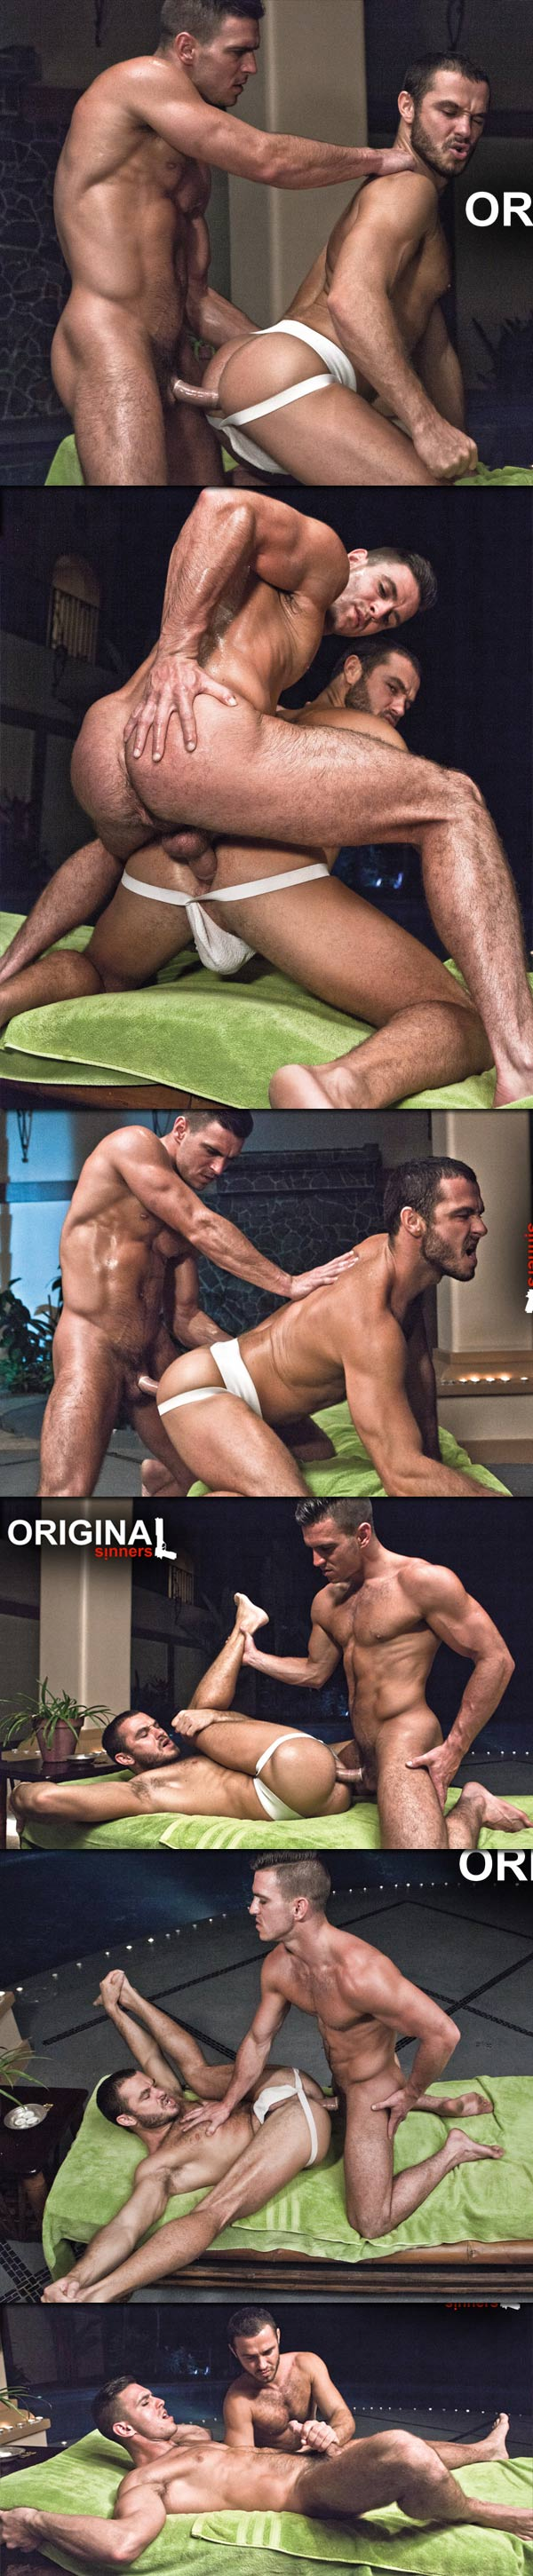 Original Sinners (Jessy Ares & Paddy O'Brian) (Scene 5) at LucasEntertainment.com